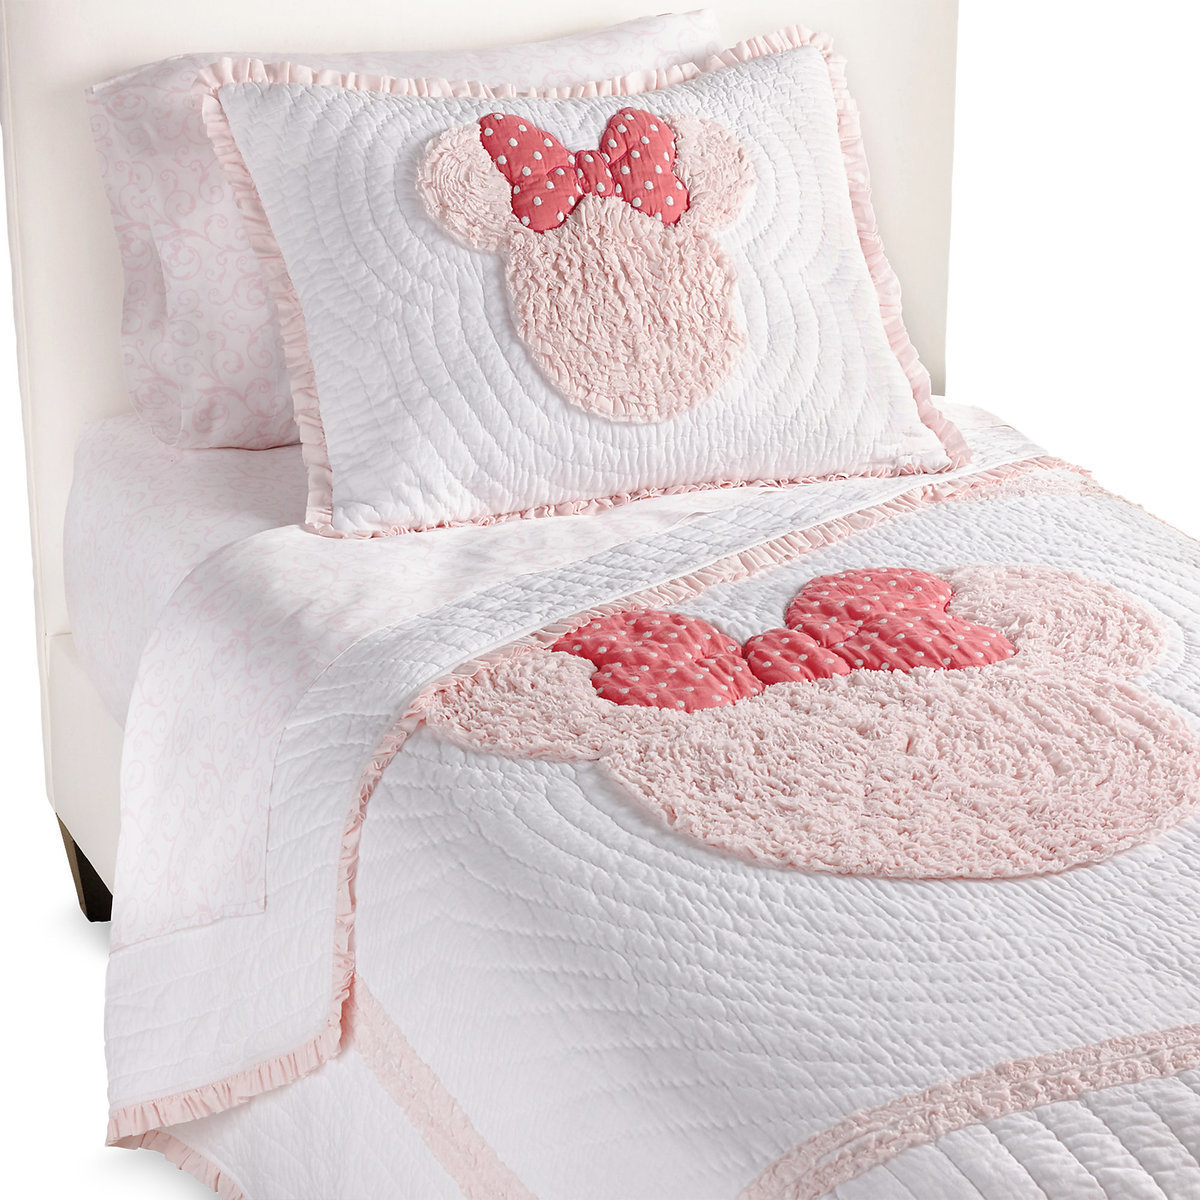 ◎送料込み◎  Minnie Mouse Really Ruffle Quilt by Ethan